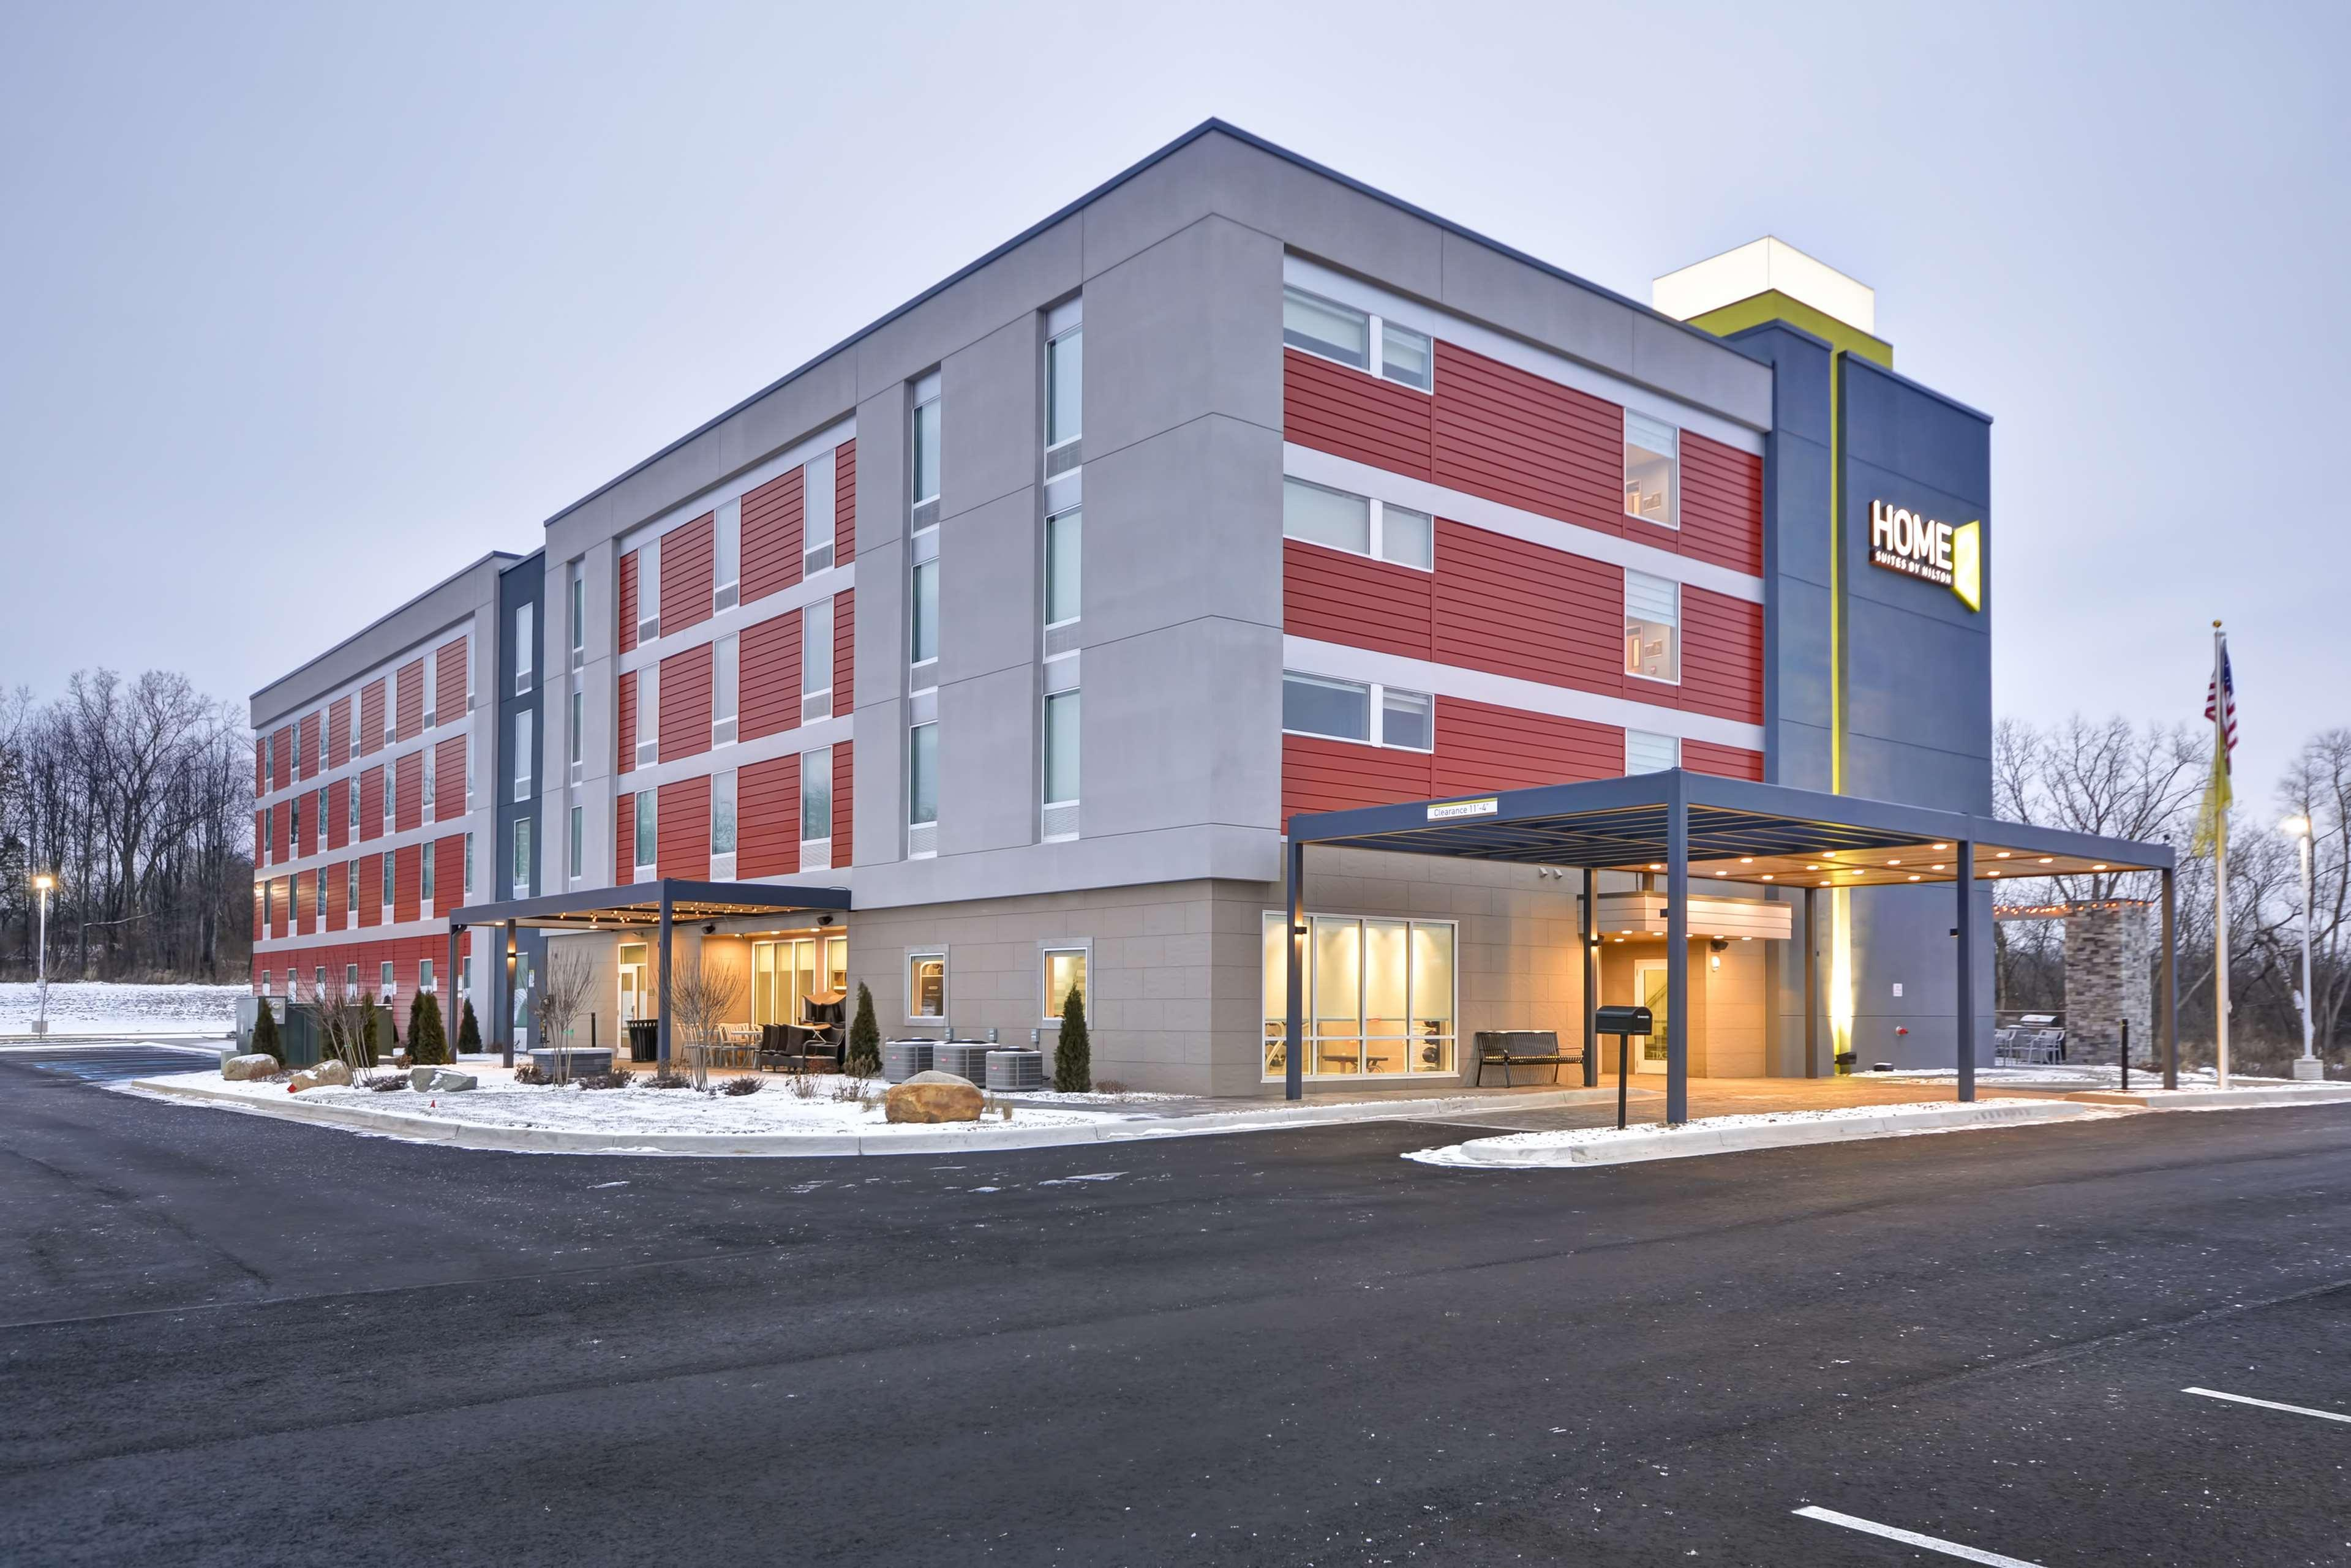 Home2 Suites by Hilton Jackson MI, Jackson